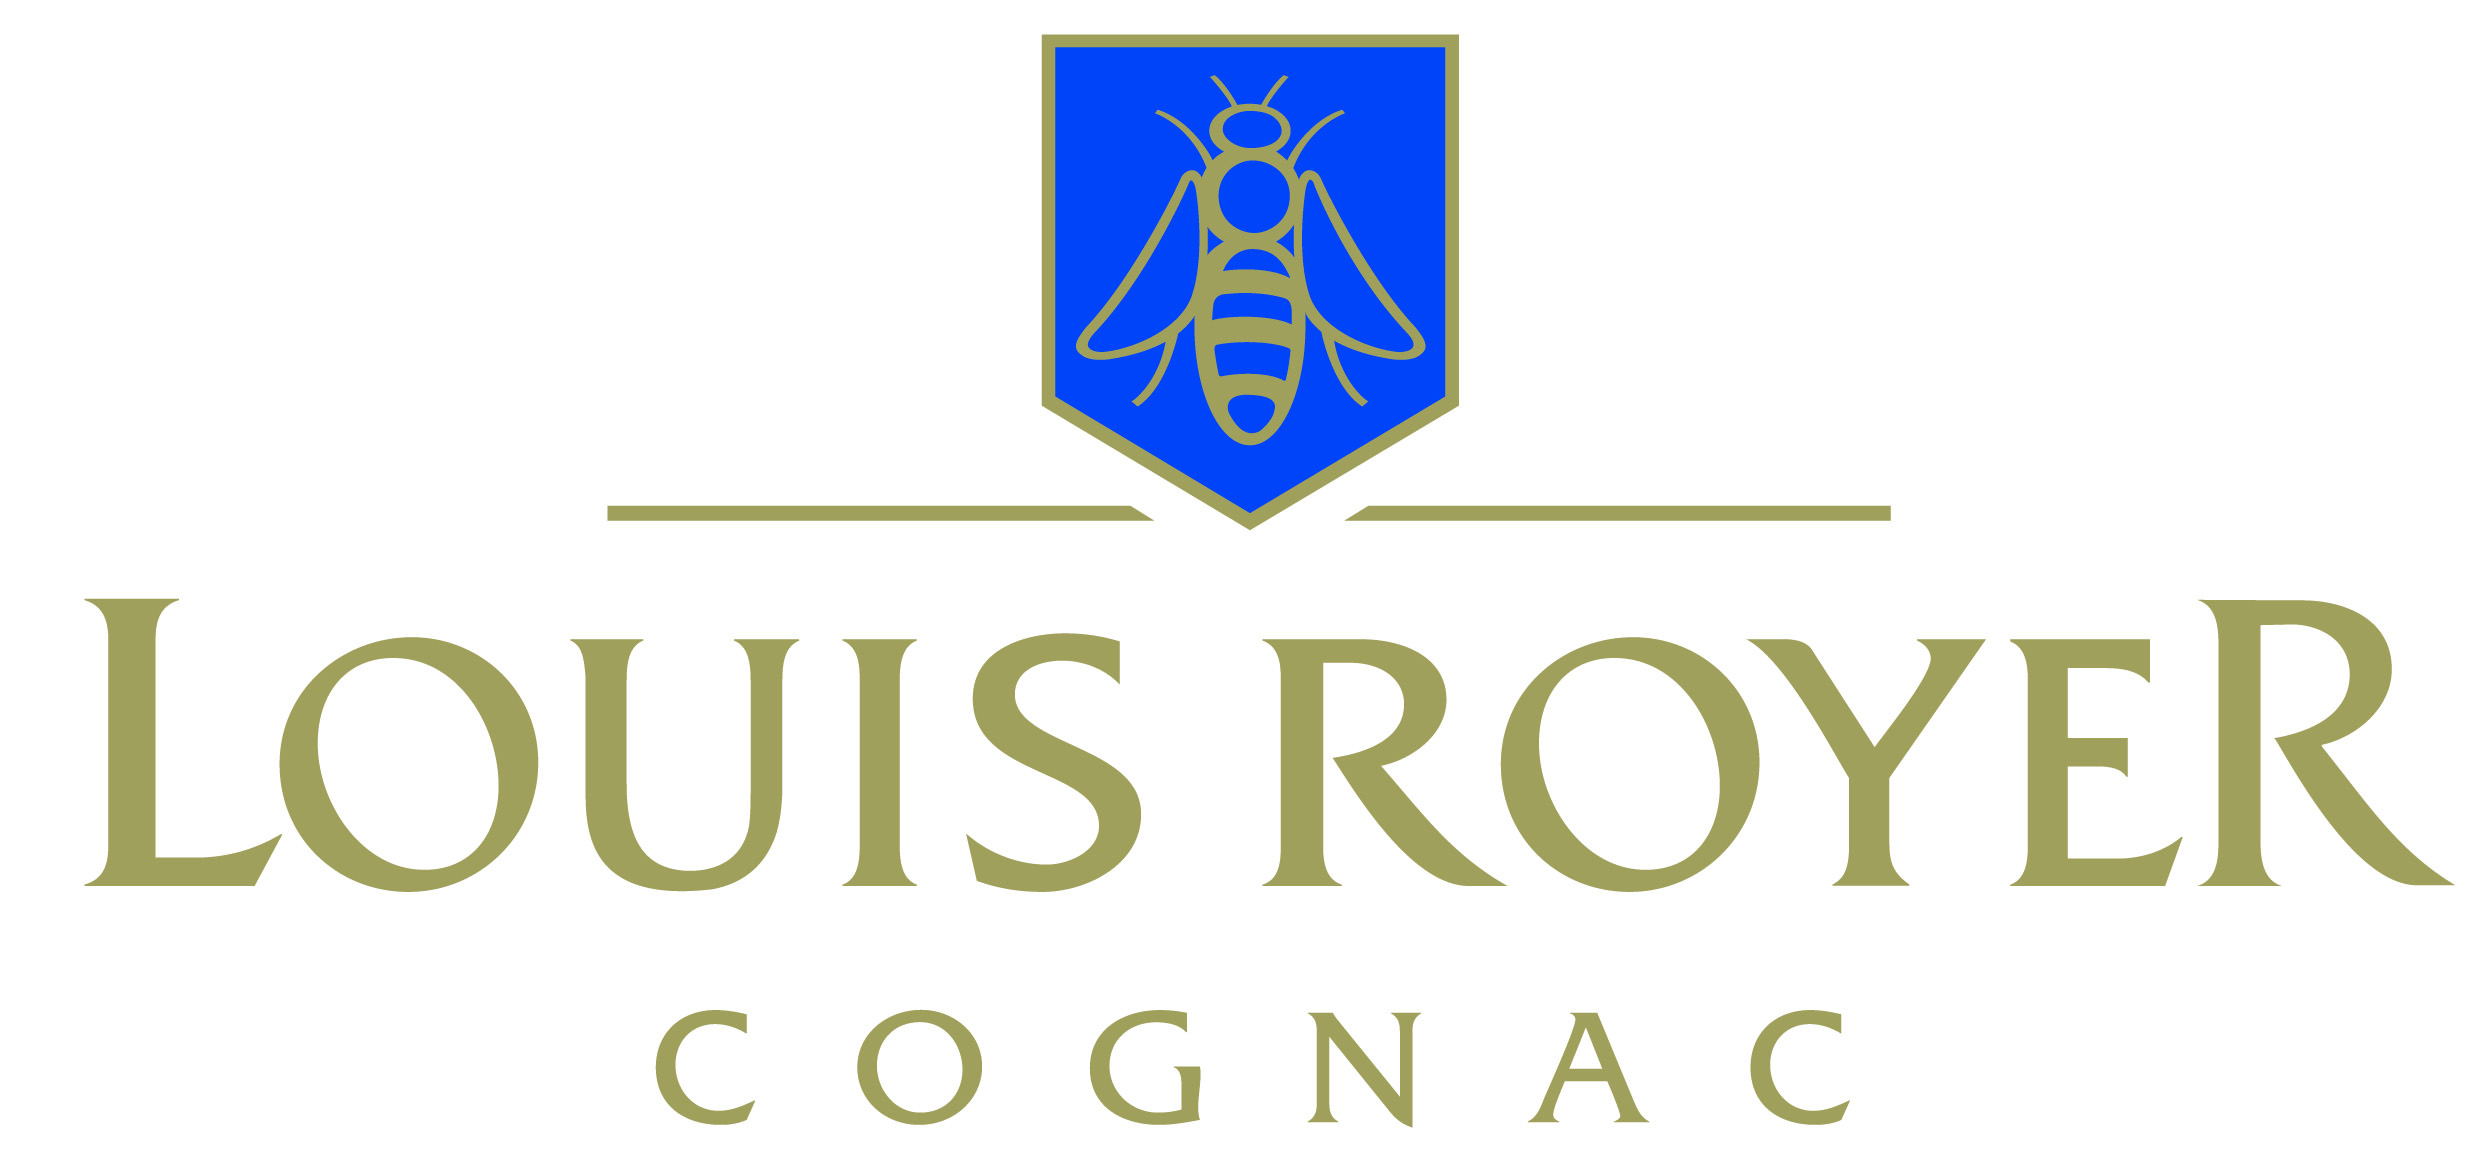 Louis Royer Cognac is Sold to Terroirs Distillers for 5 Million